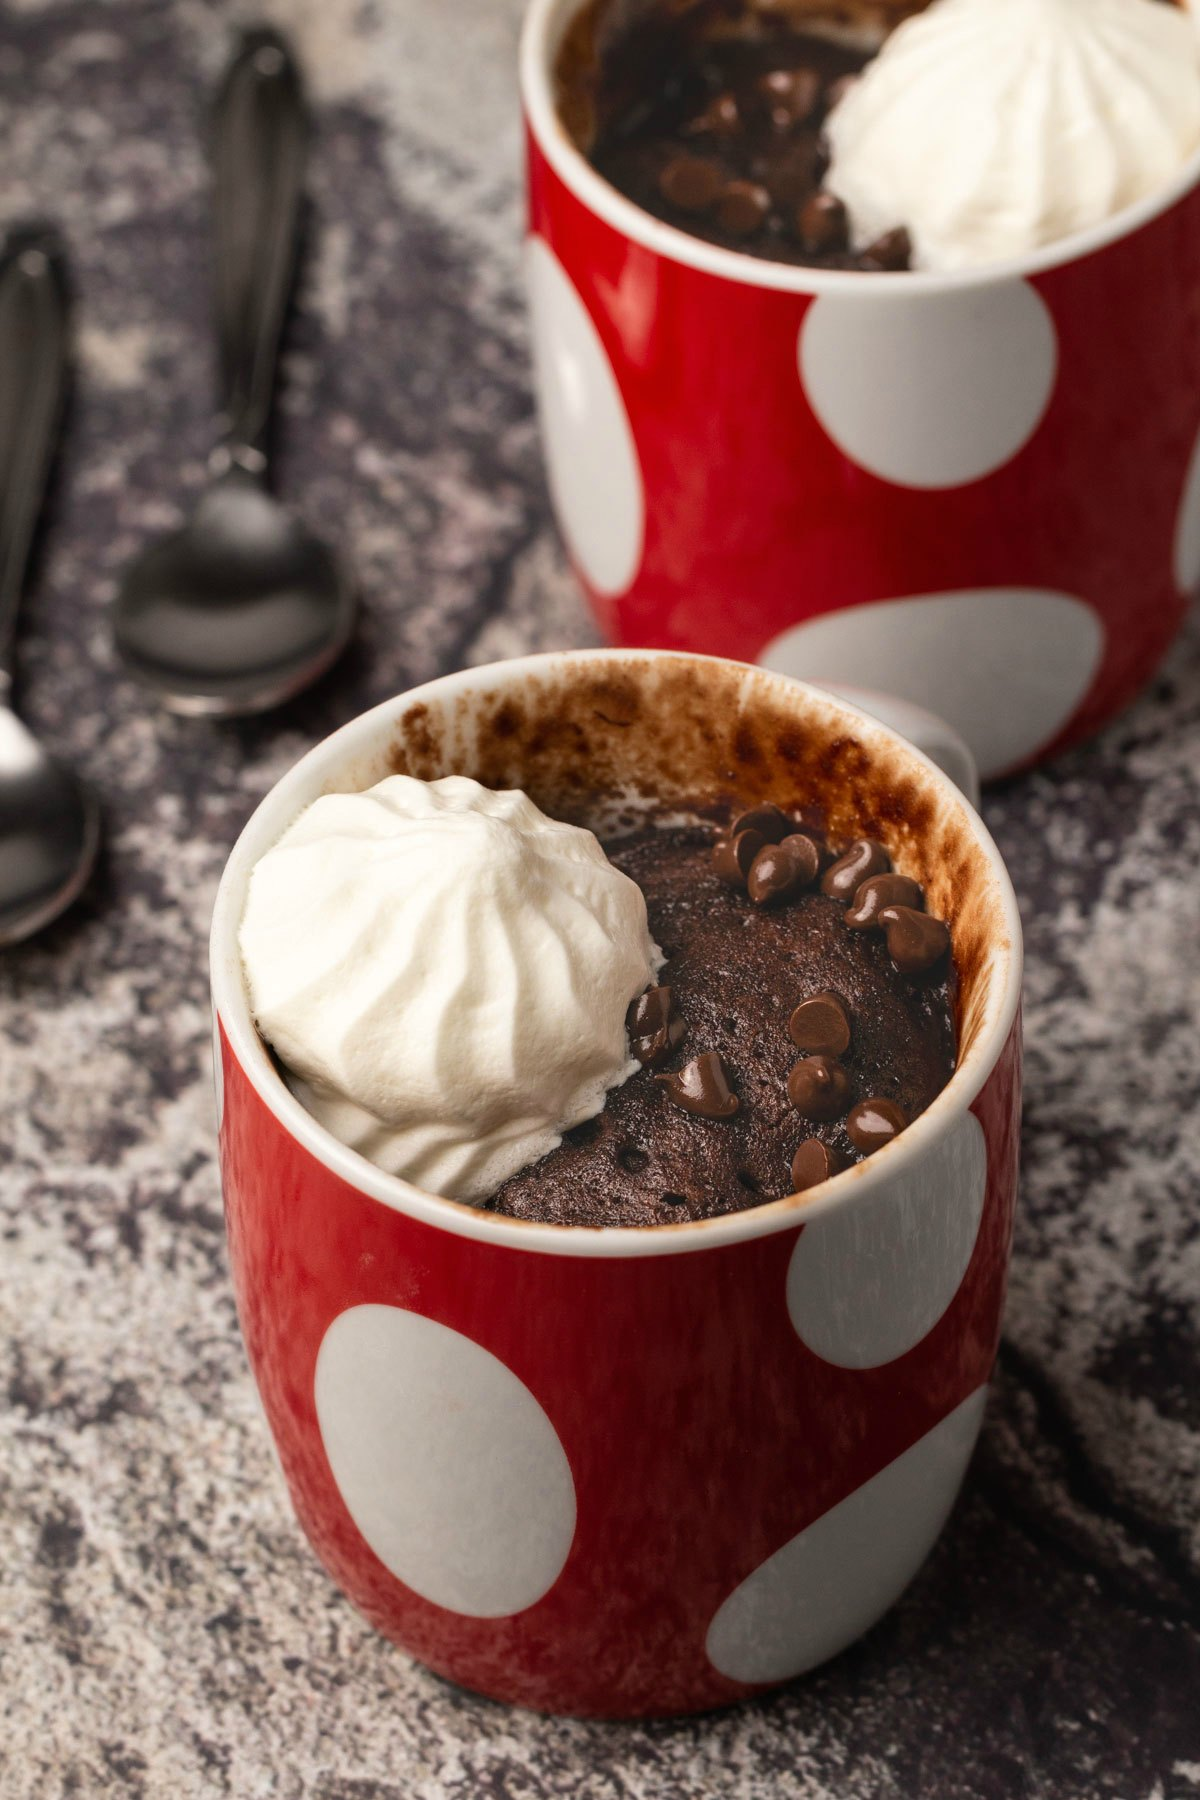 Vegan mug cake in a red and white mug.